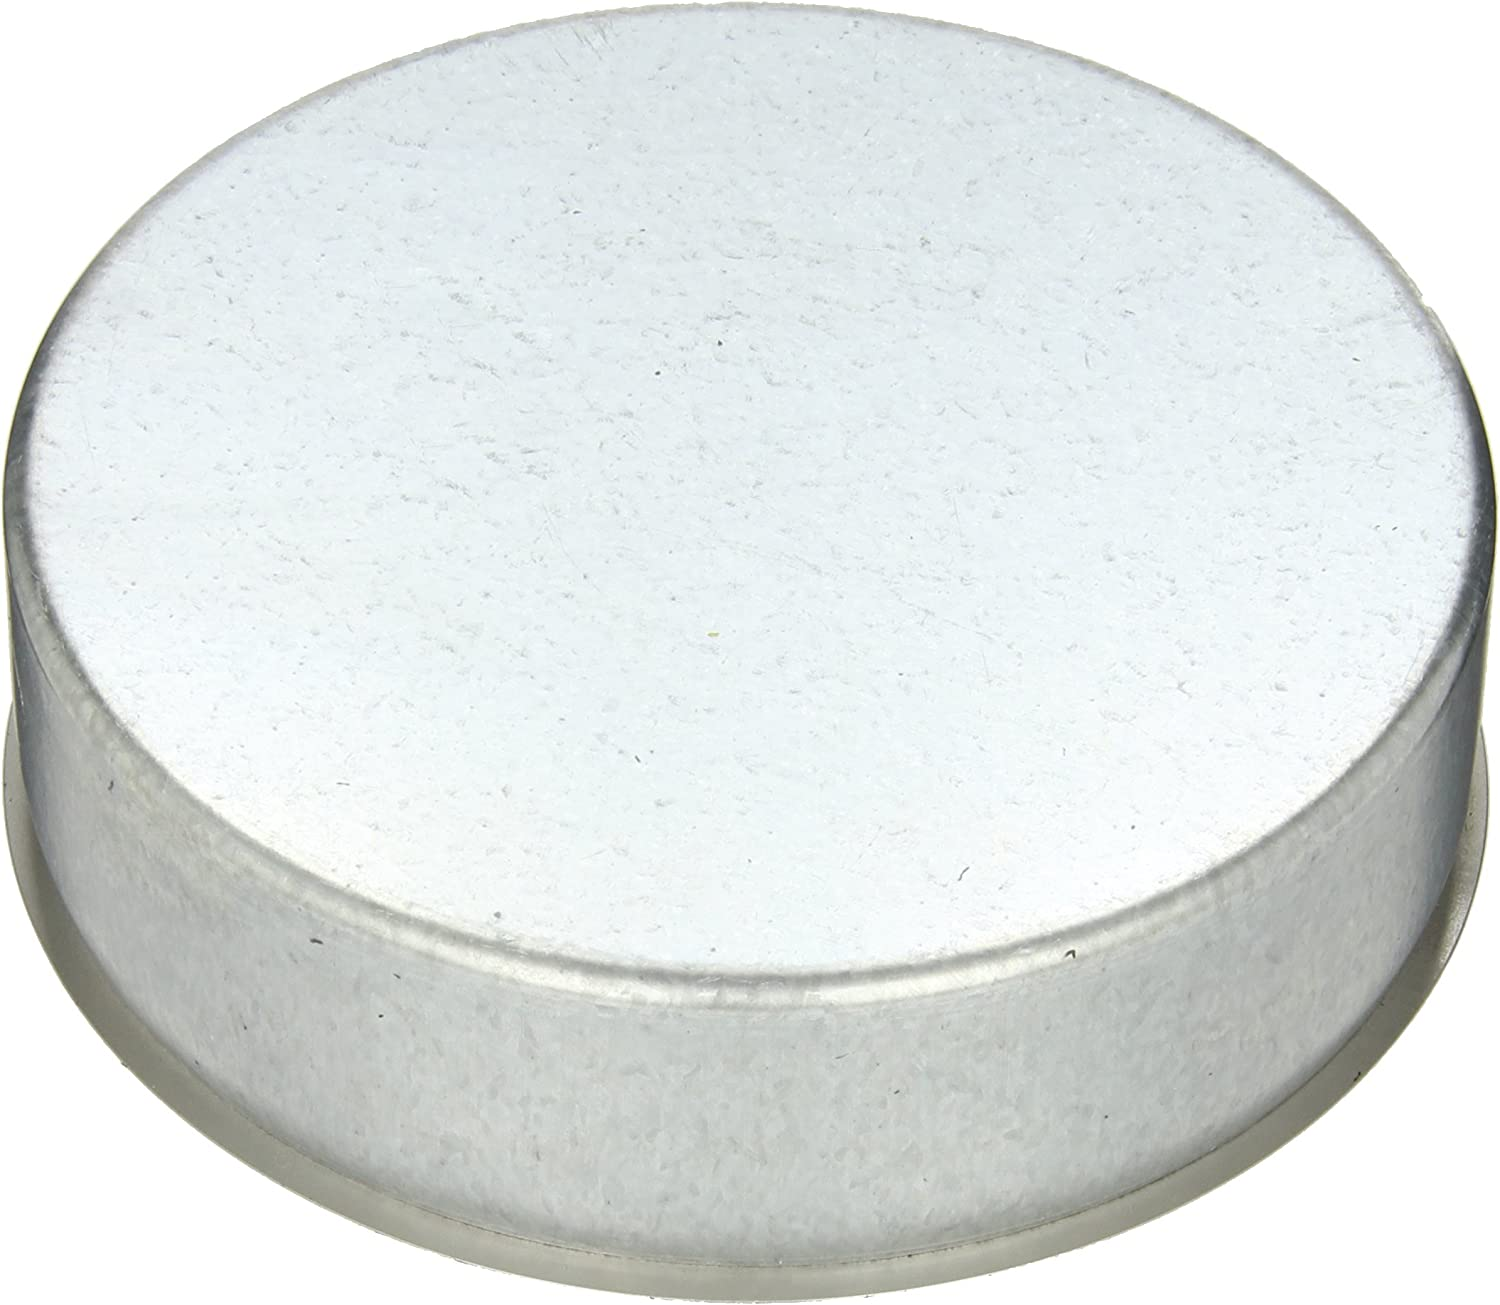 SKF 99533 Speedi Sleeve SSLEEVE Save money Diam Inch Our shop OFFers the best service Shaft 5.311in Style